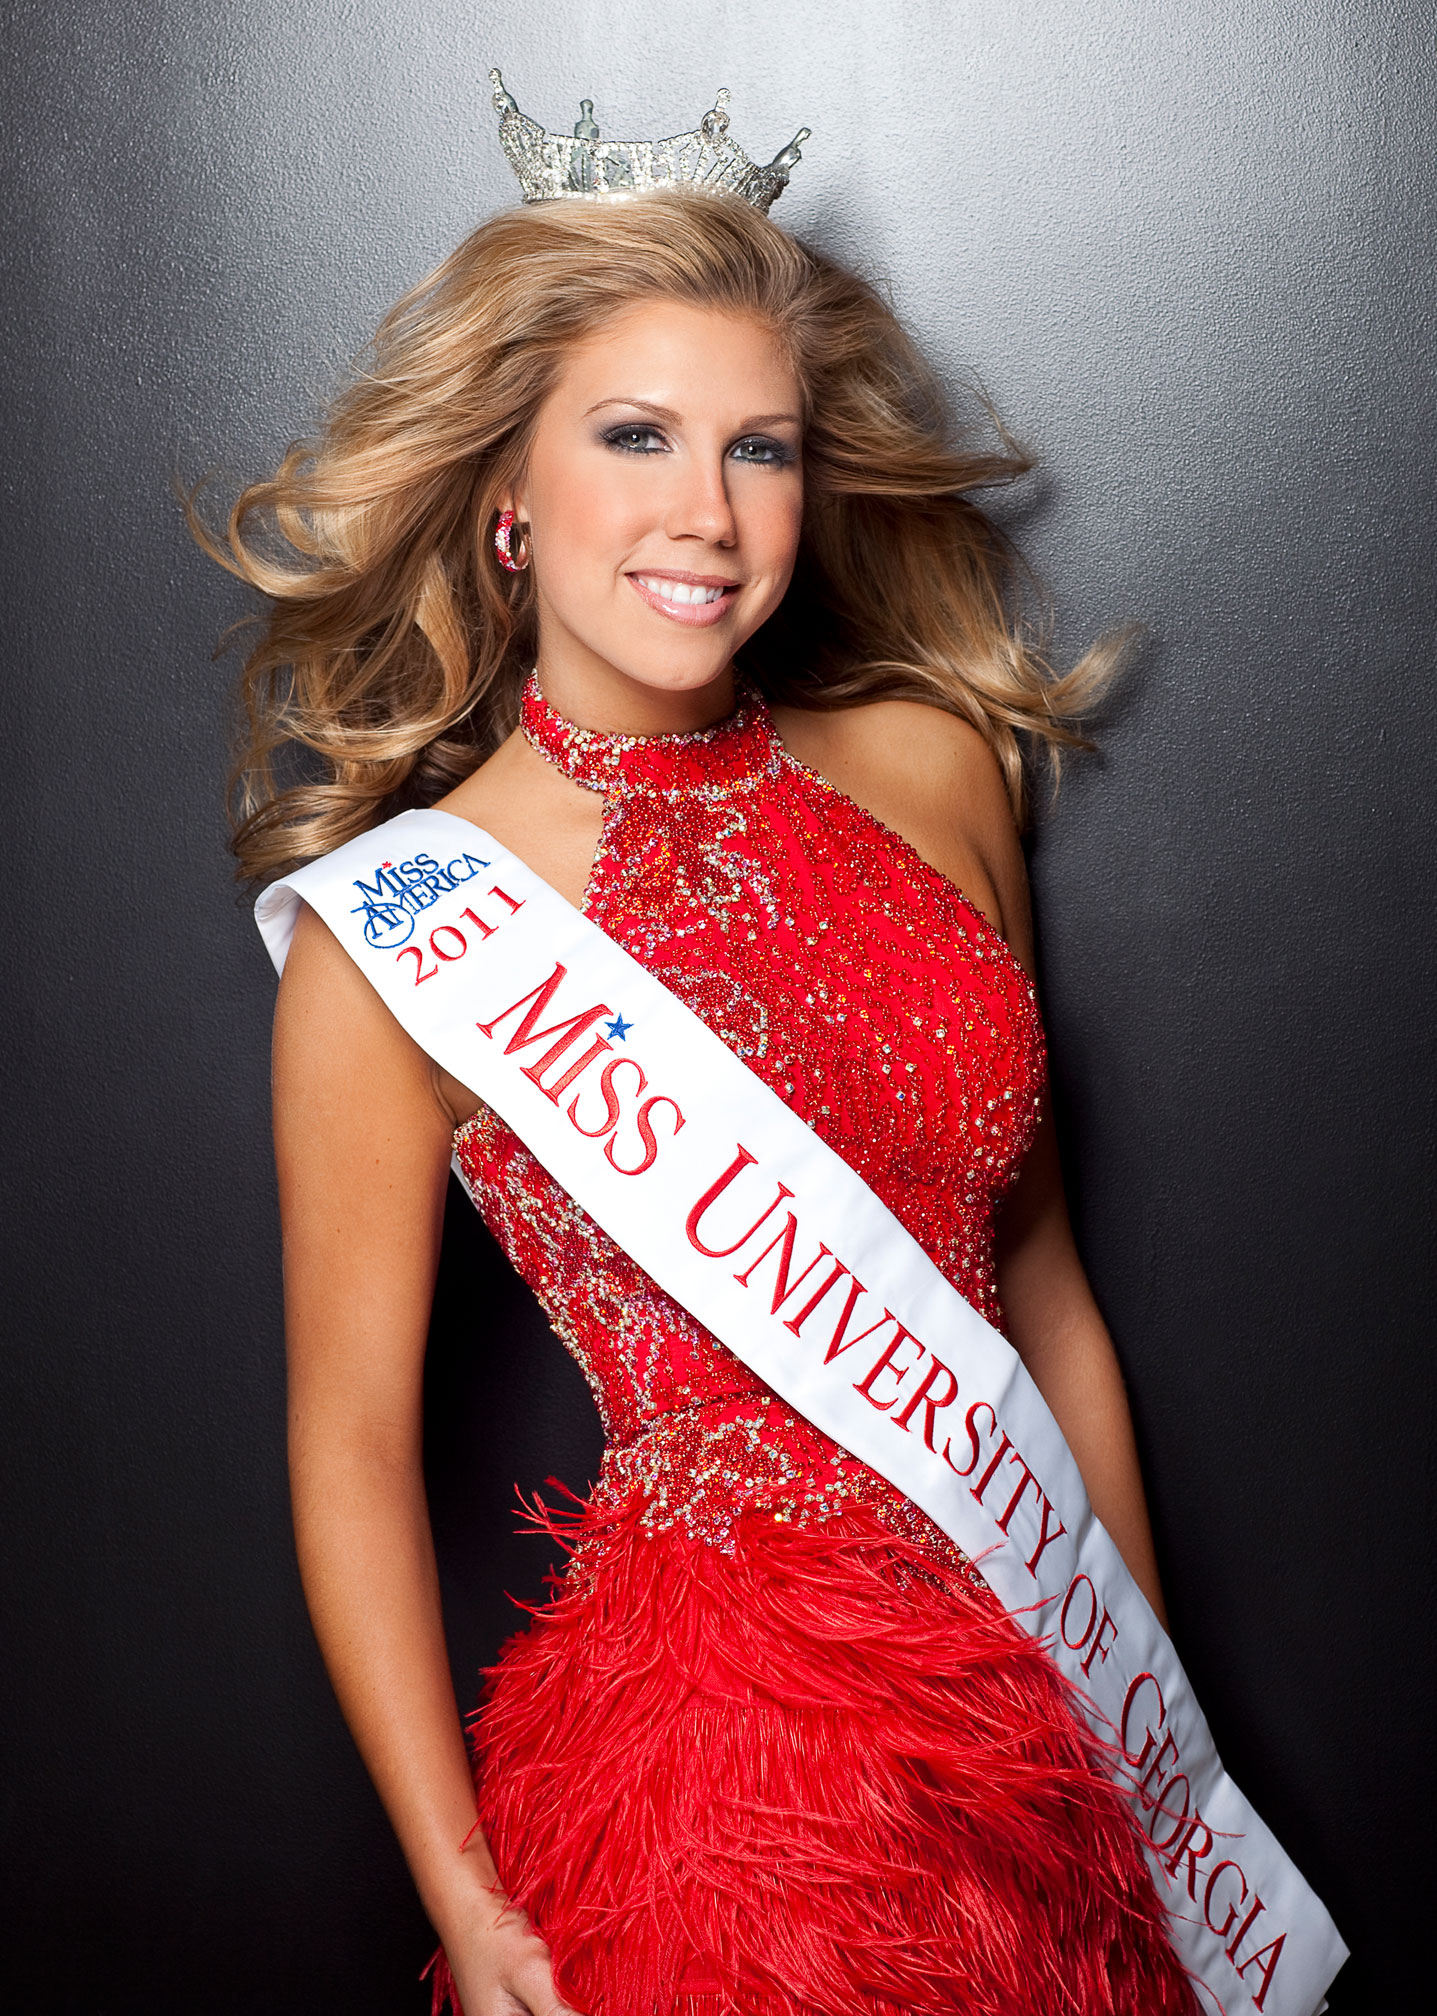 Miss Michigan Scholarship Pageant